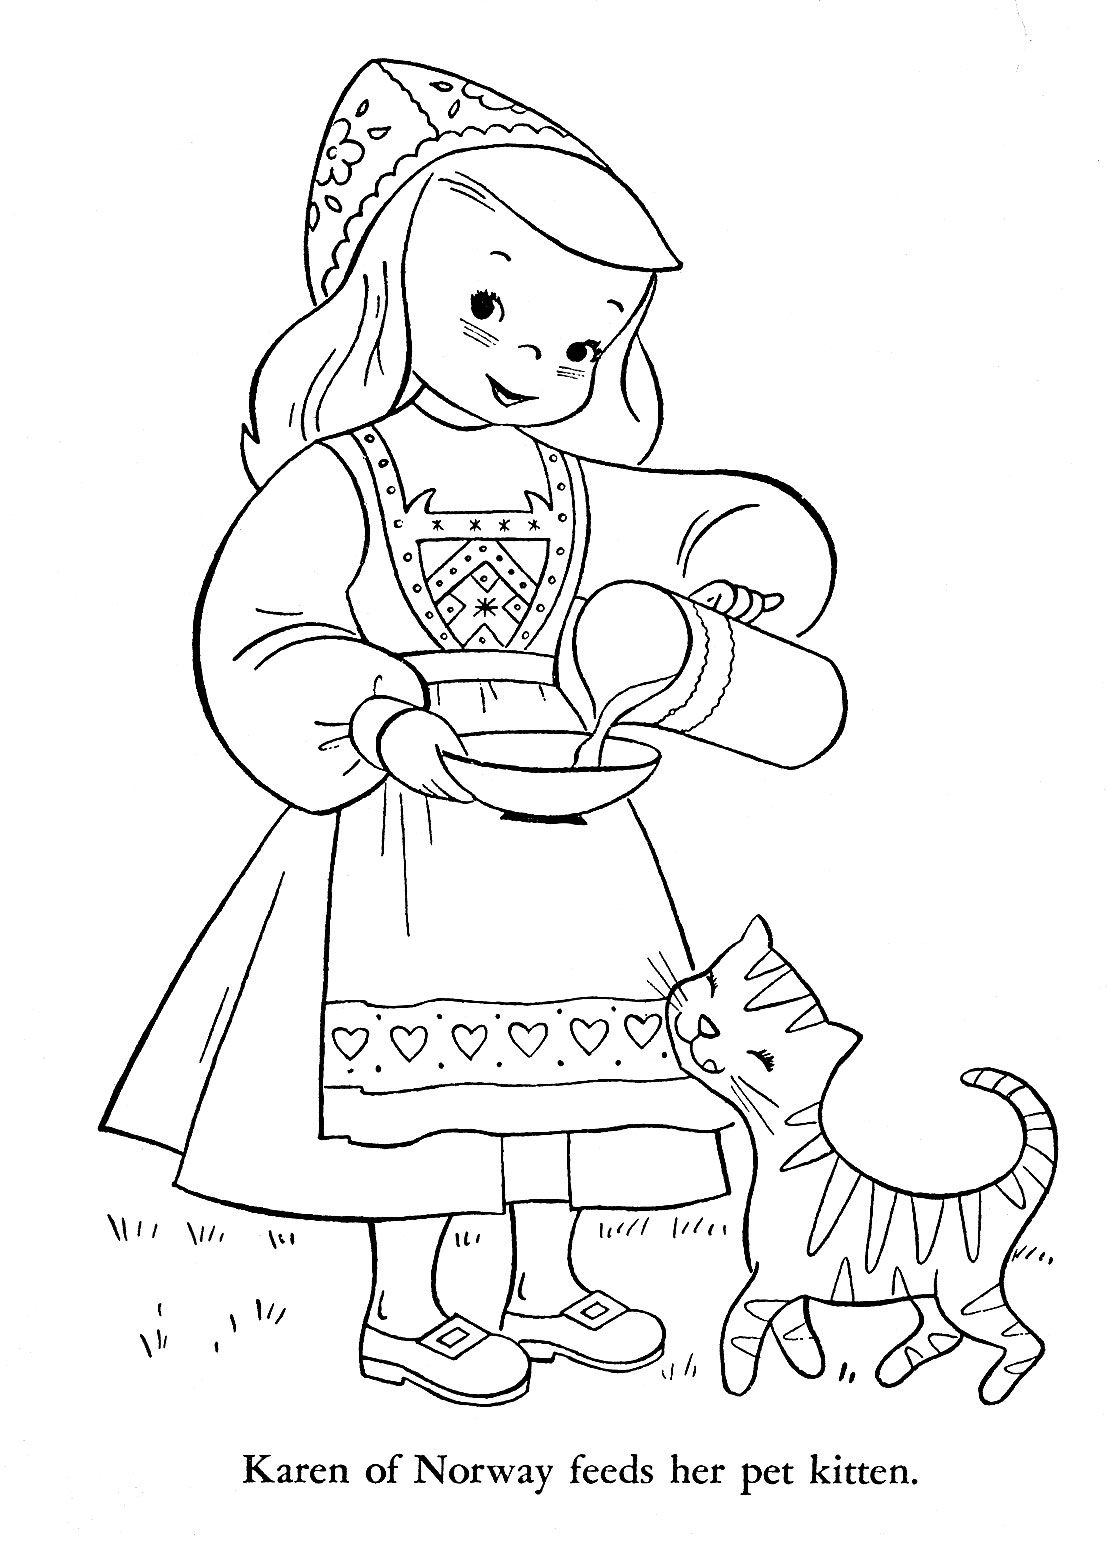 Clip Art Scotland Coloring Pages 1000 images about embroidery children of the world on pinterest around worlds coloring sheets for kids and belgium